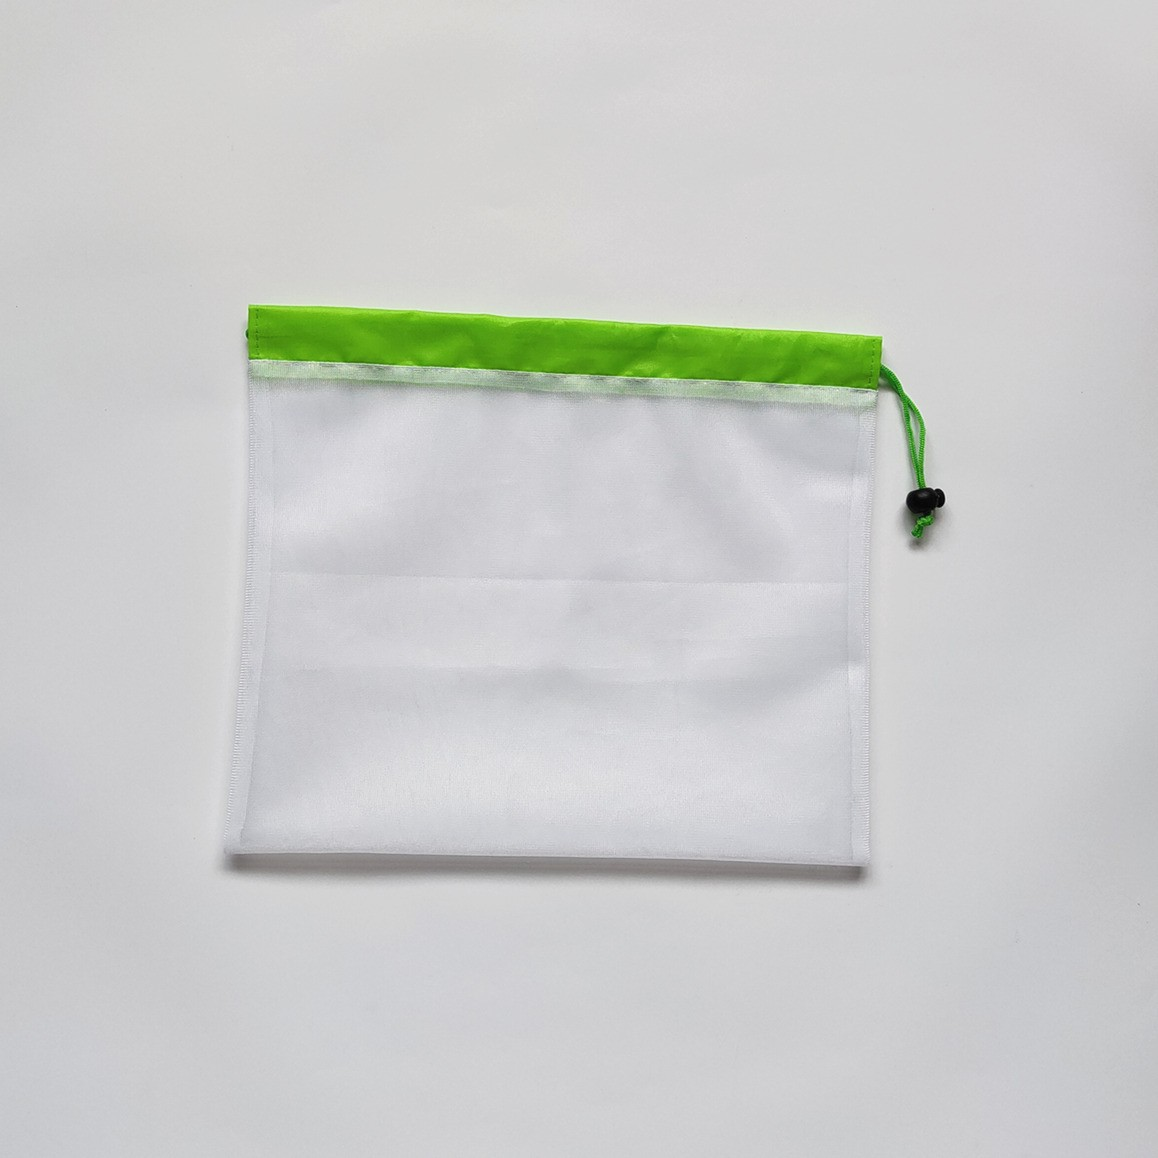 Buy Mesh Net Bag, Woven Poly Mesh Bags Wholesalers, Poly Woven Sacks Producers